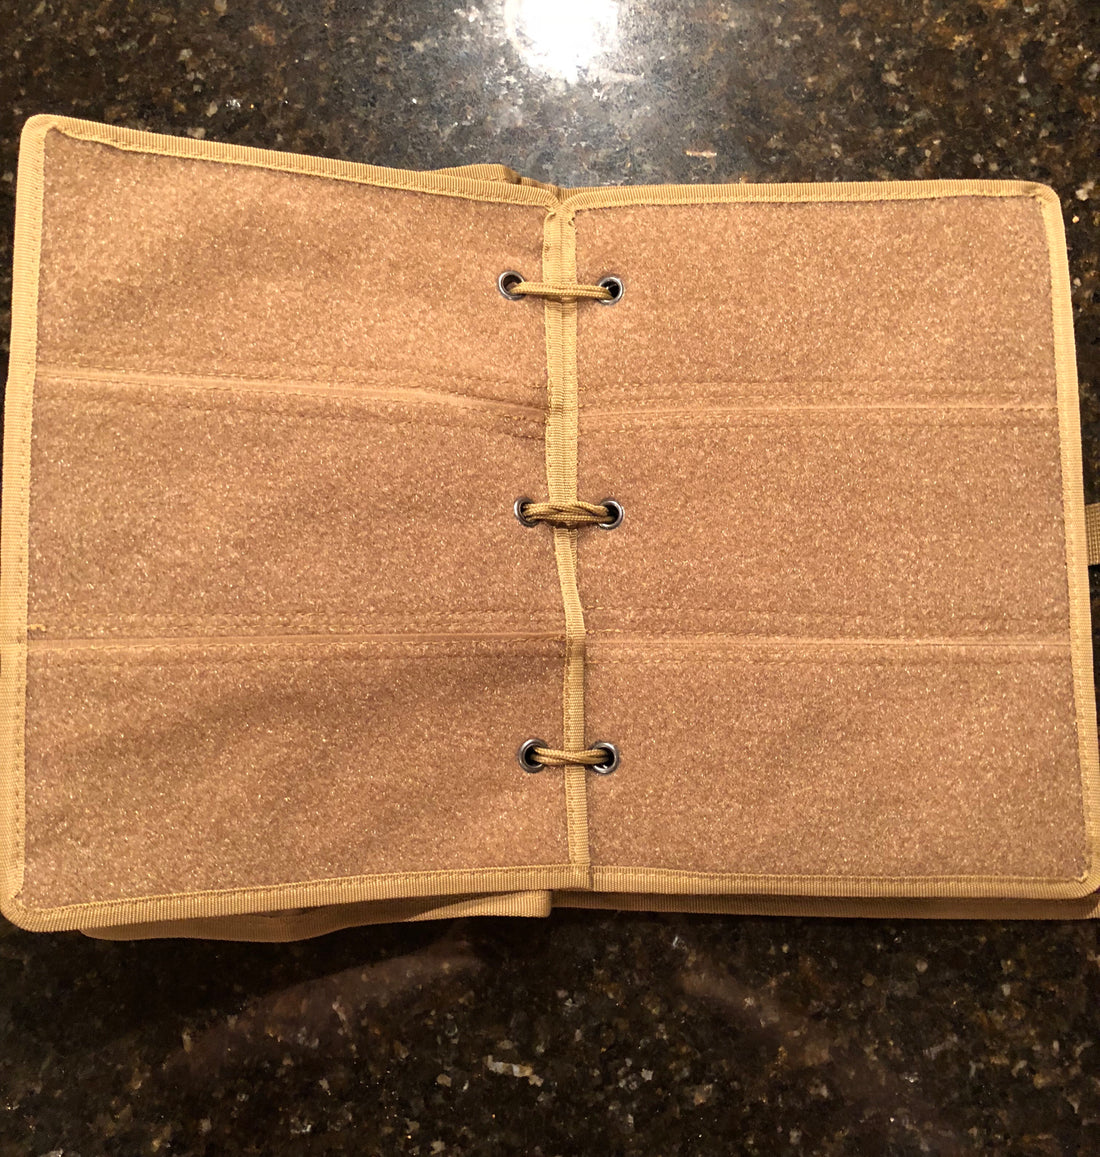 VELCRO Patch Book